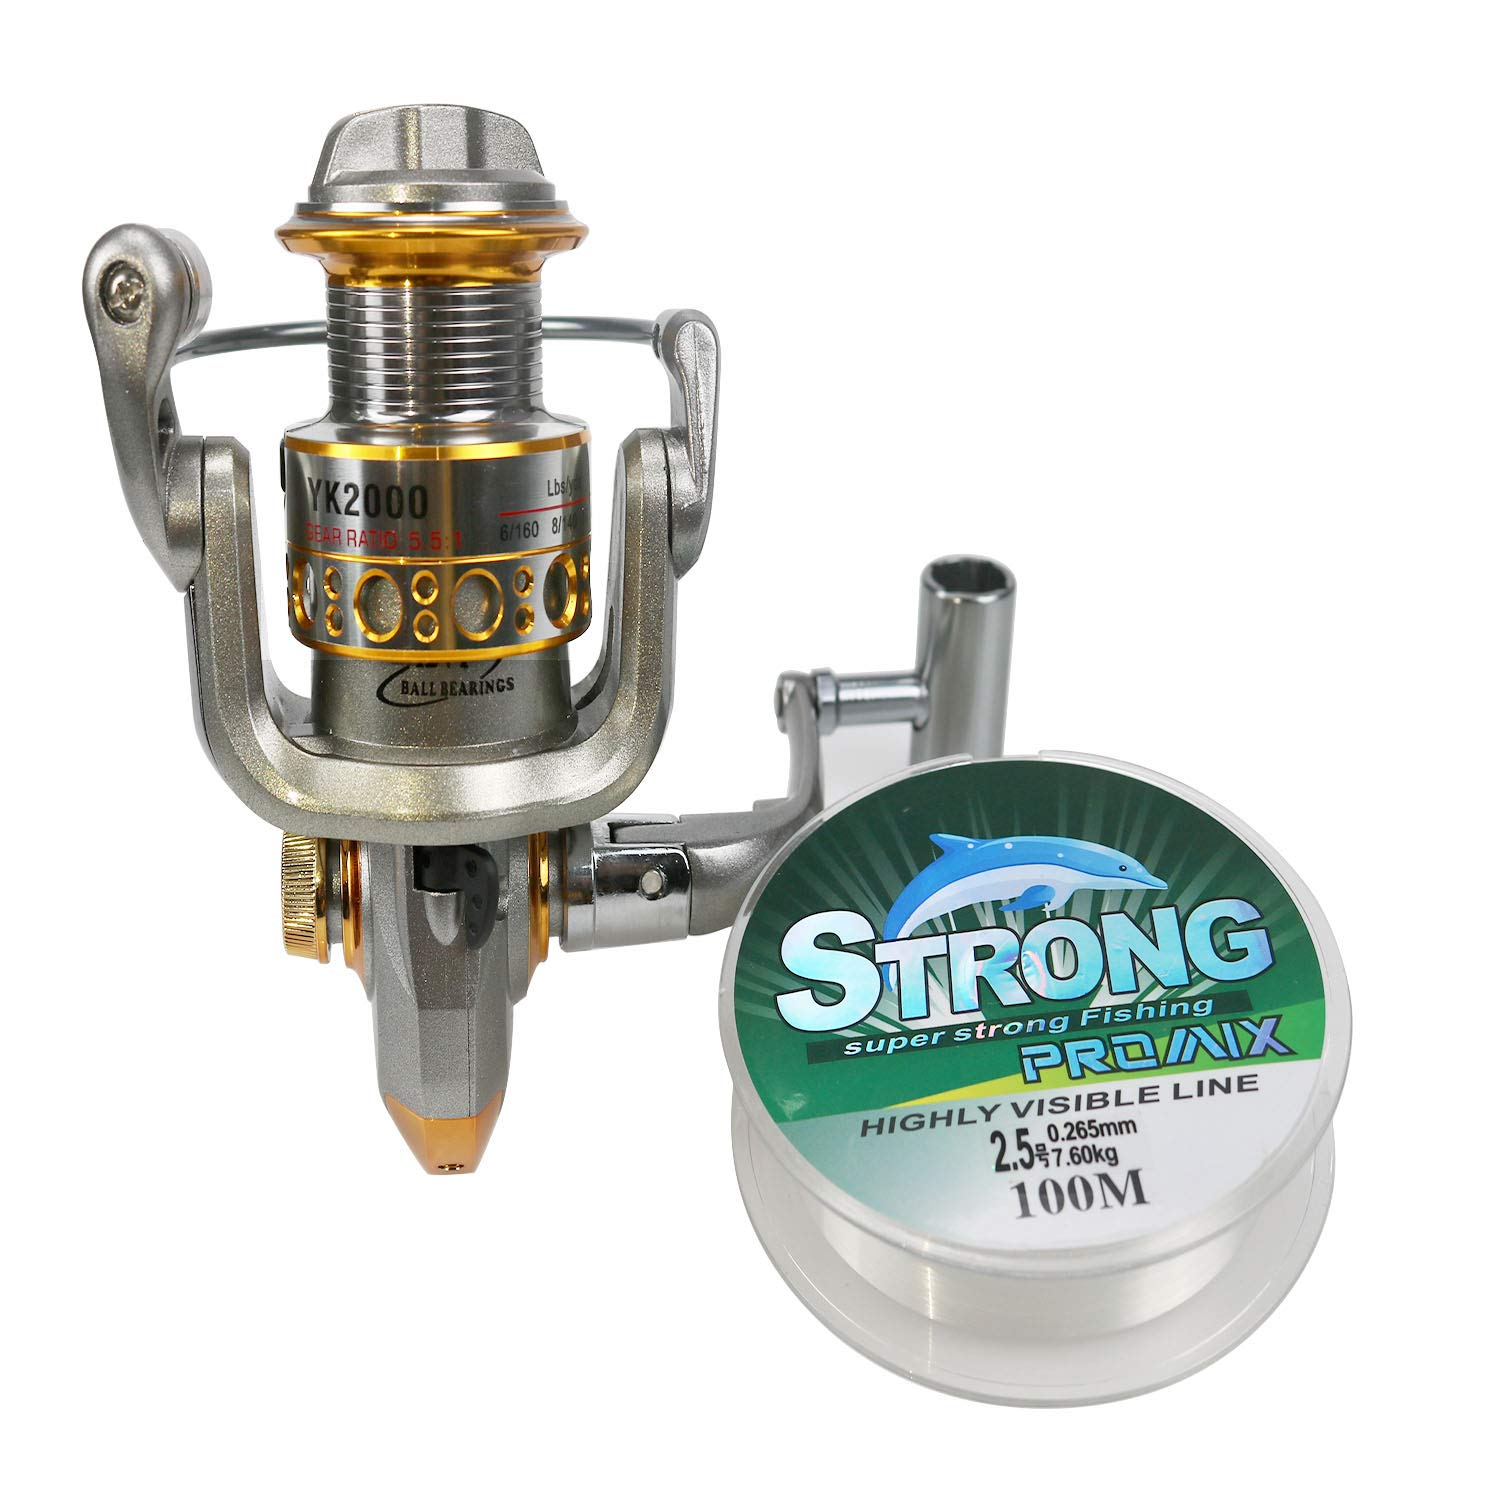 Great Fishing reel and string